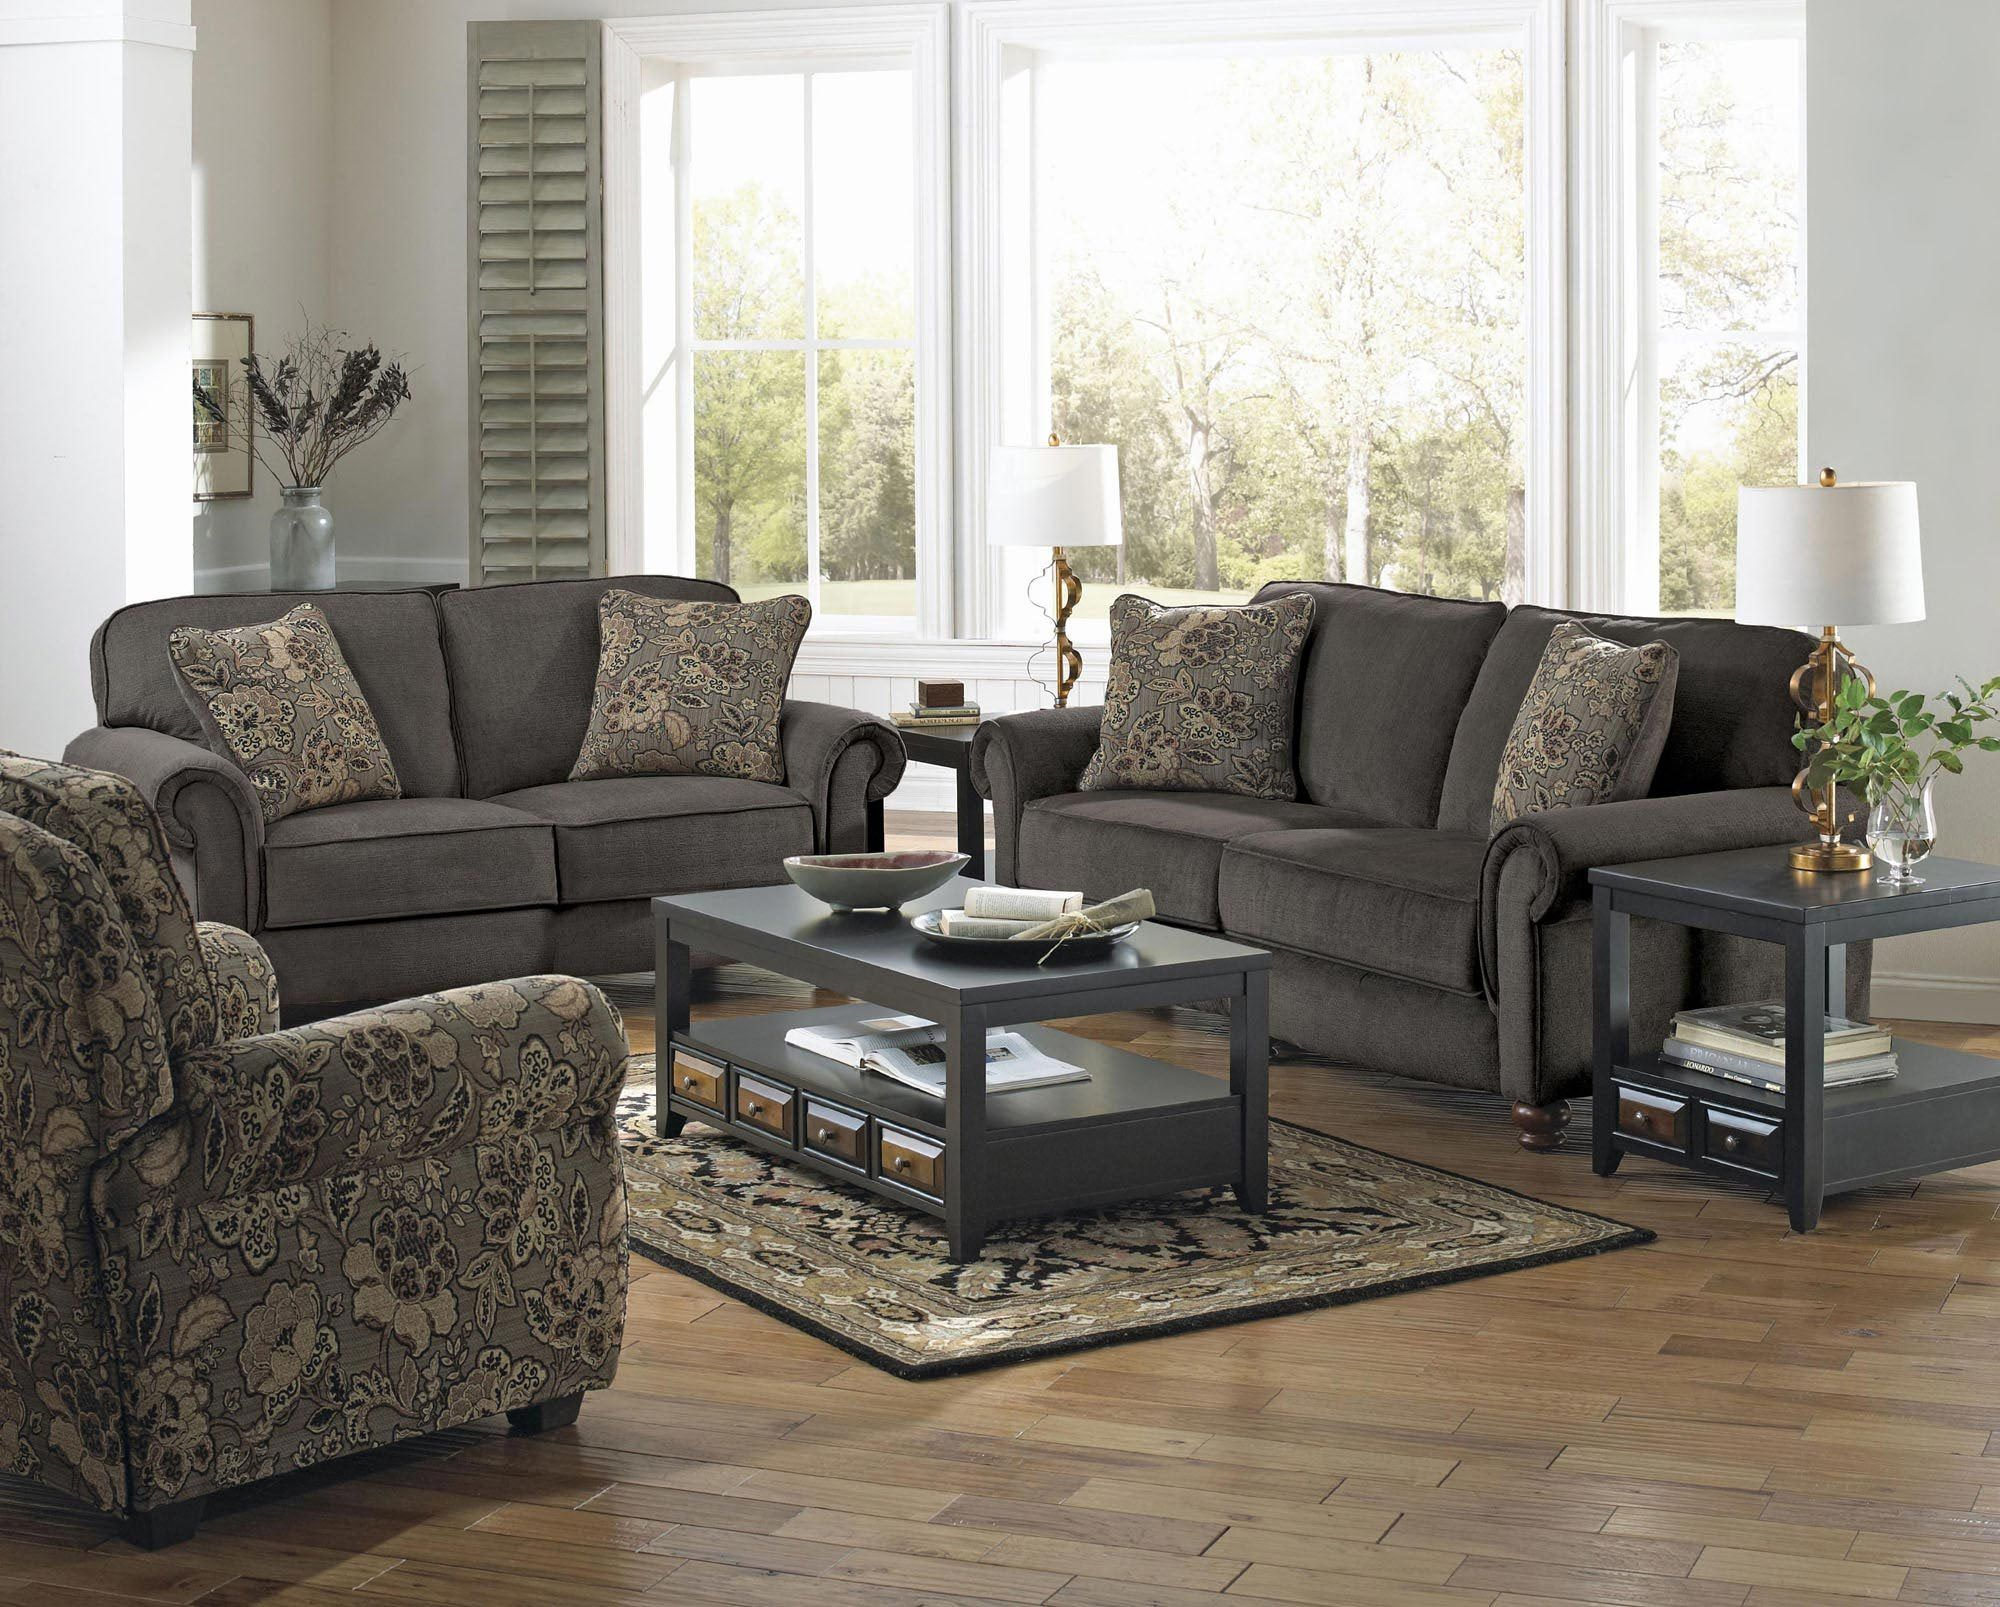 Downing Sofa Set in Charcoal Jackson